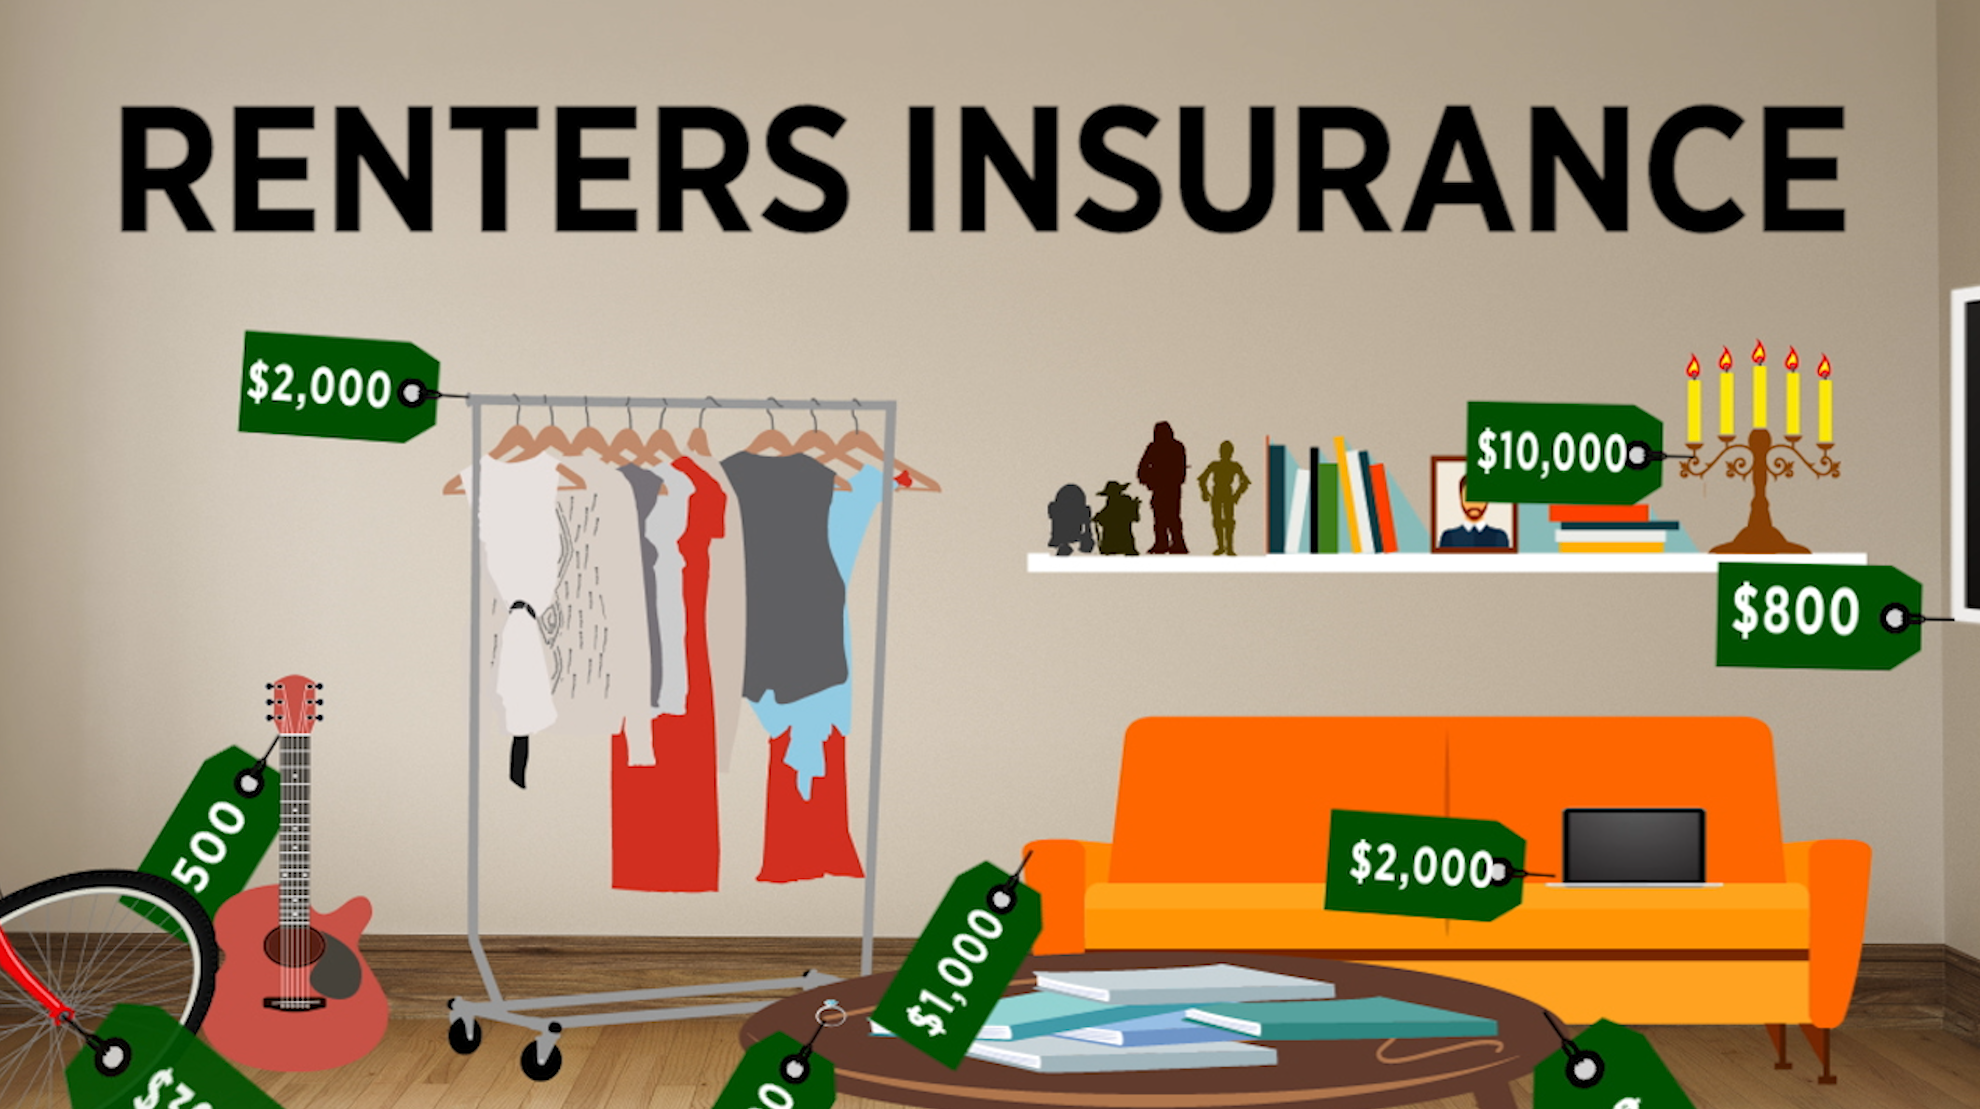 The Top Renters Insurance Companies According to Consumers ...